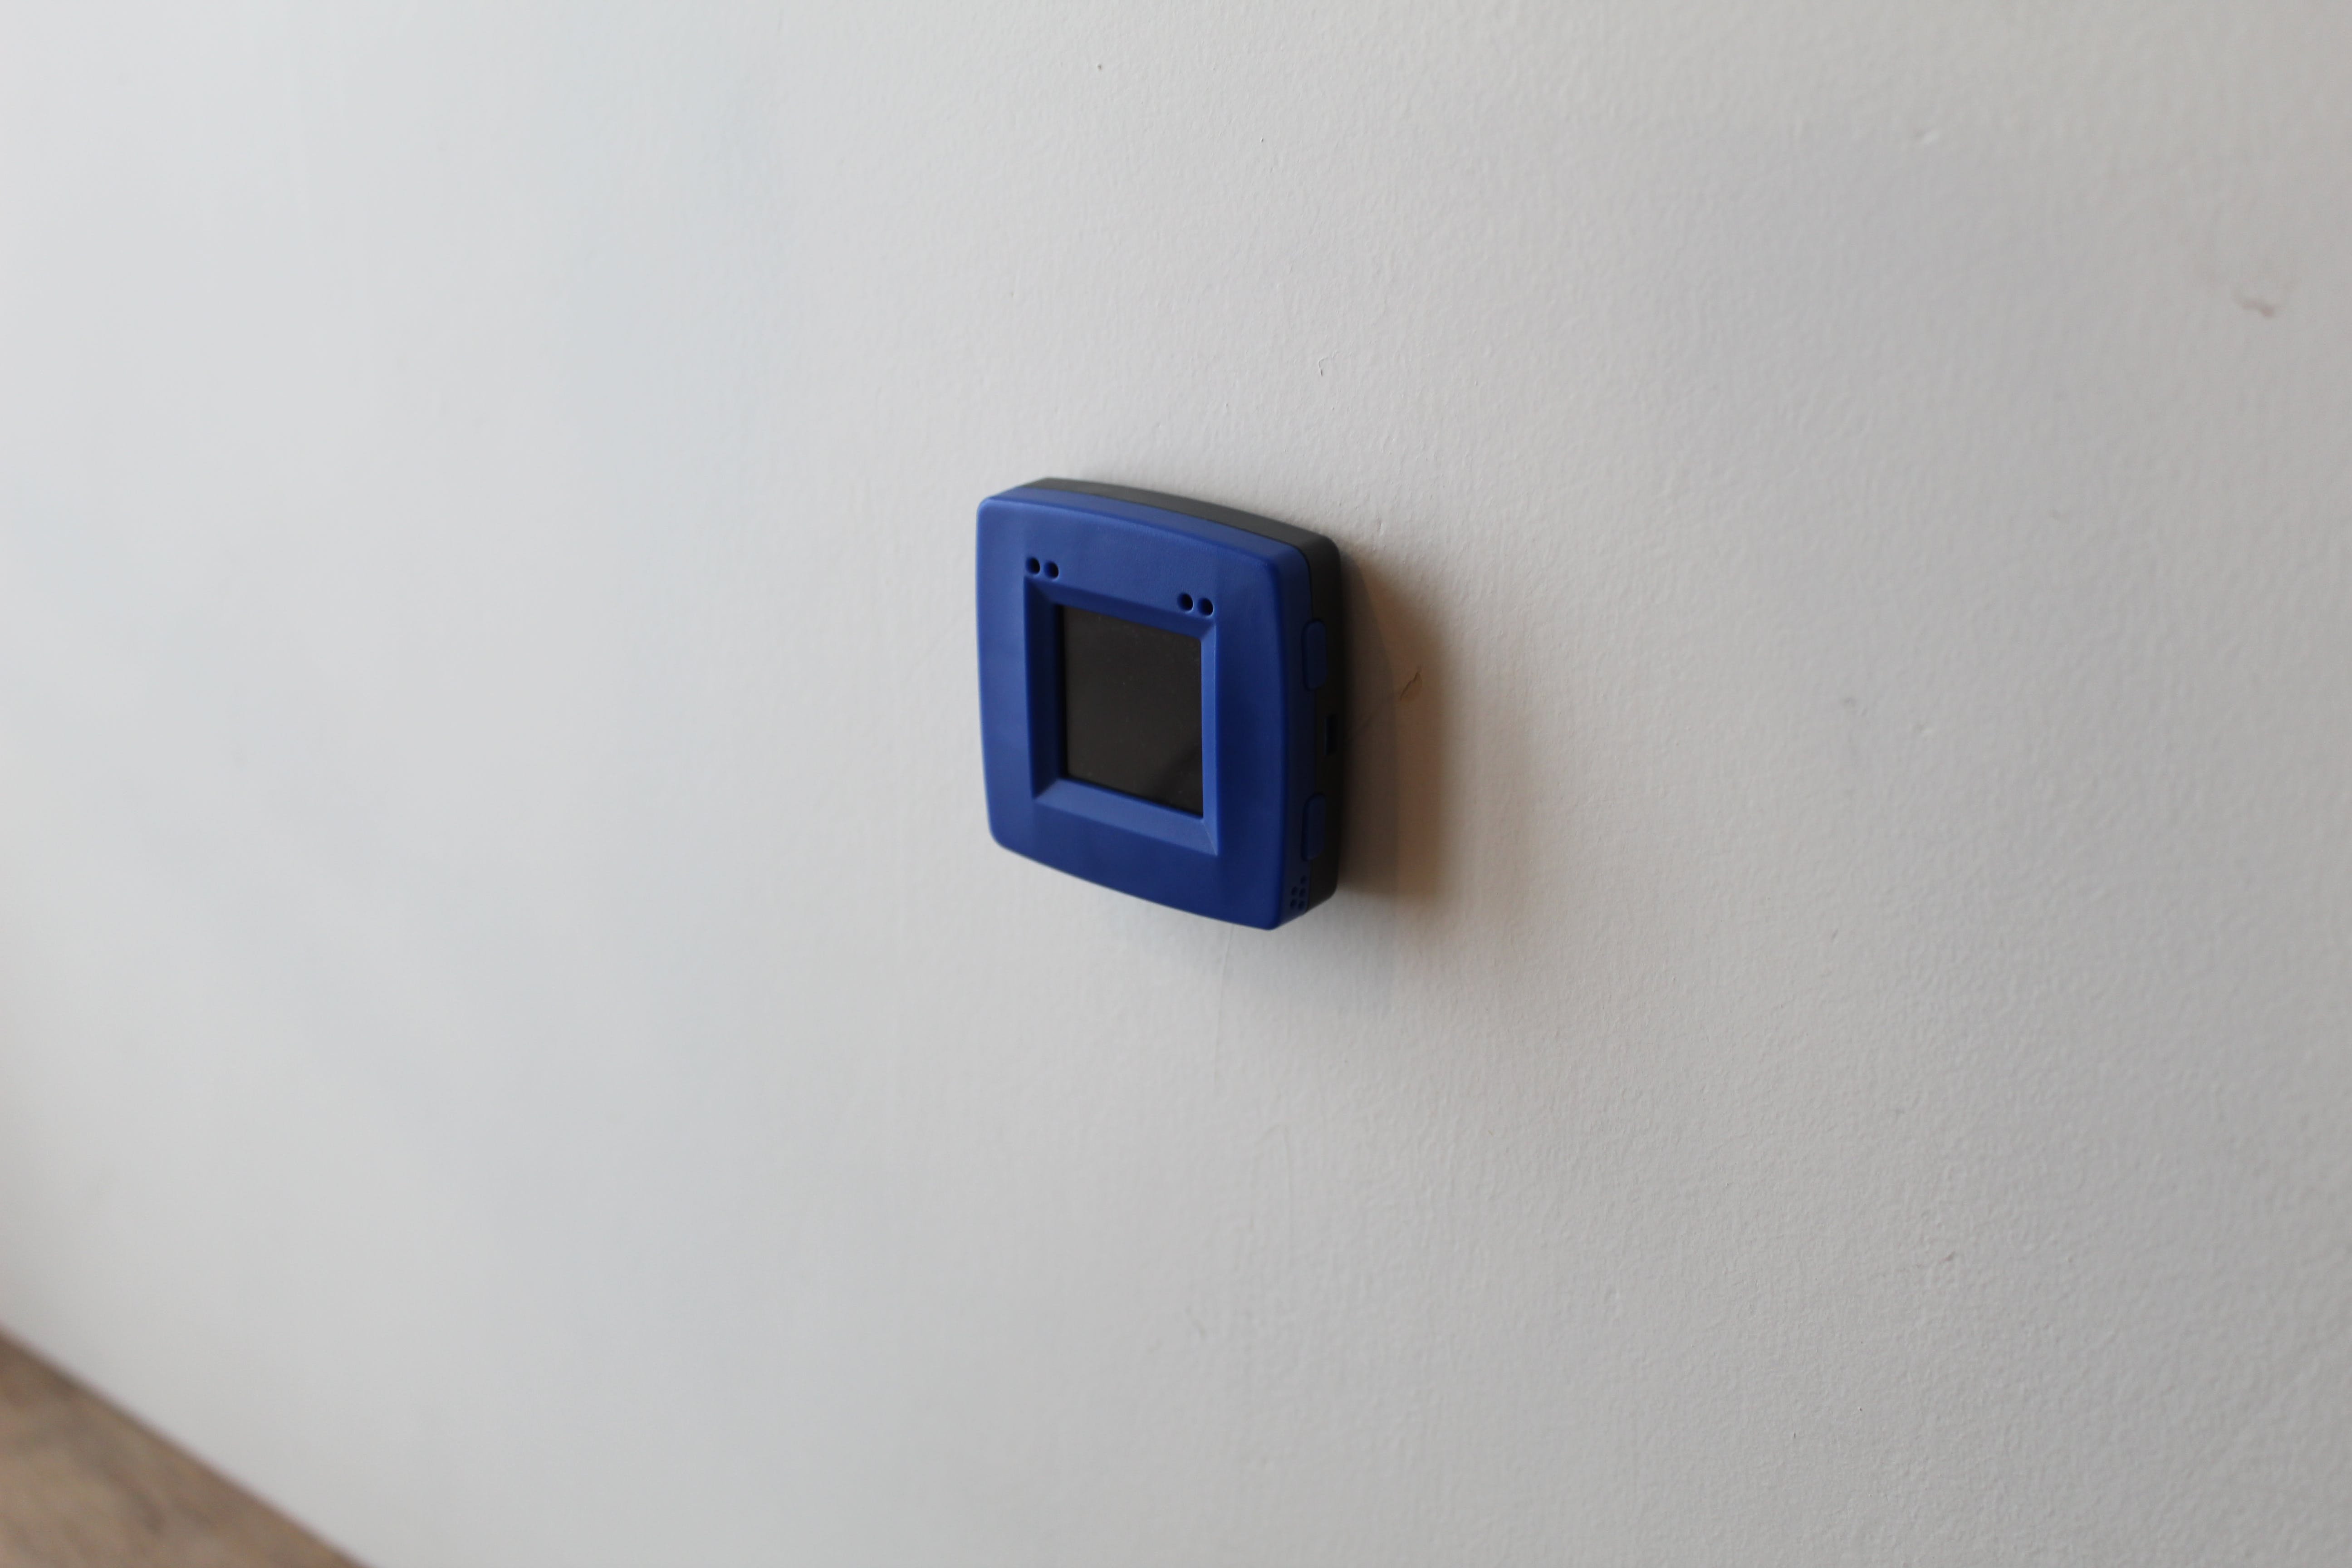 NXP module mounted to the wall in the workspace